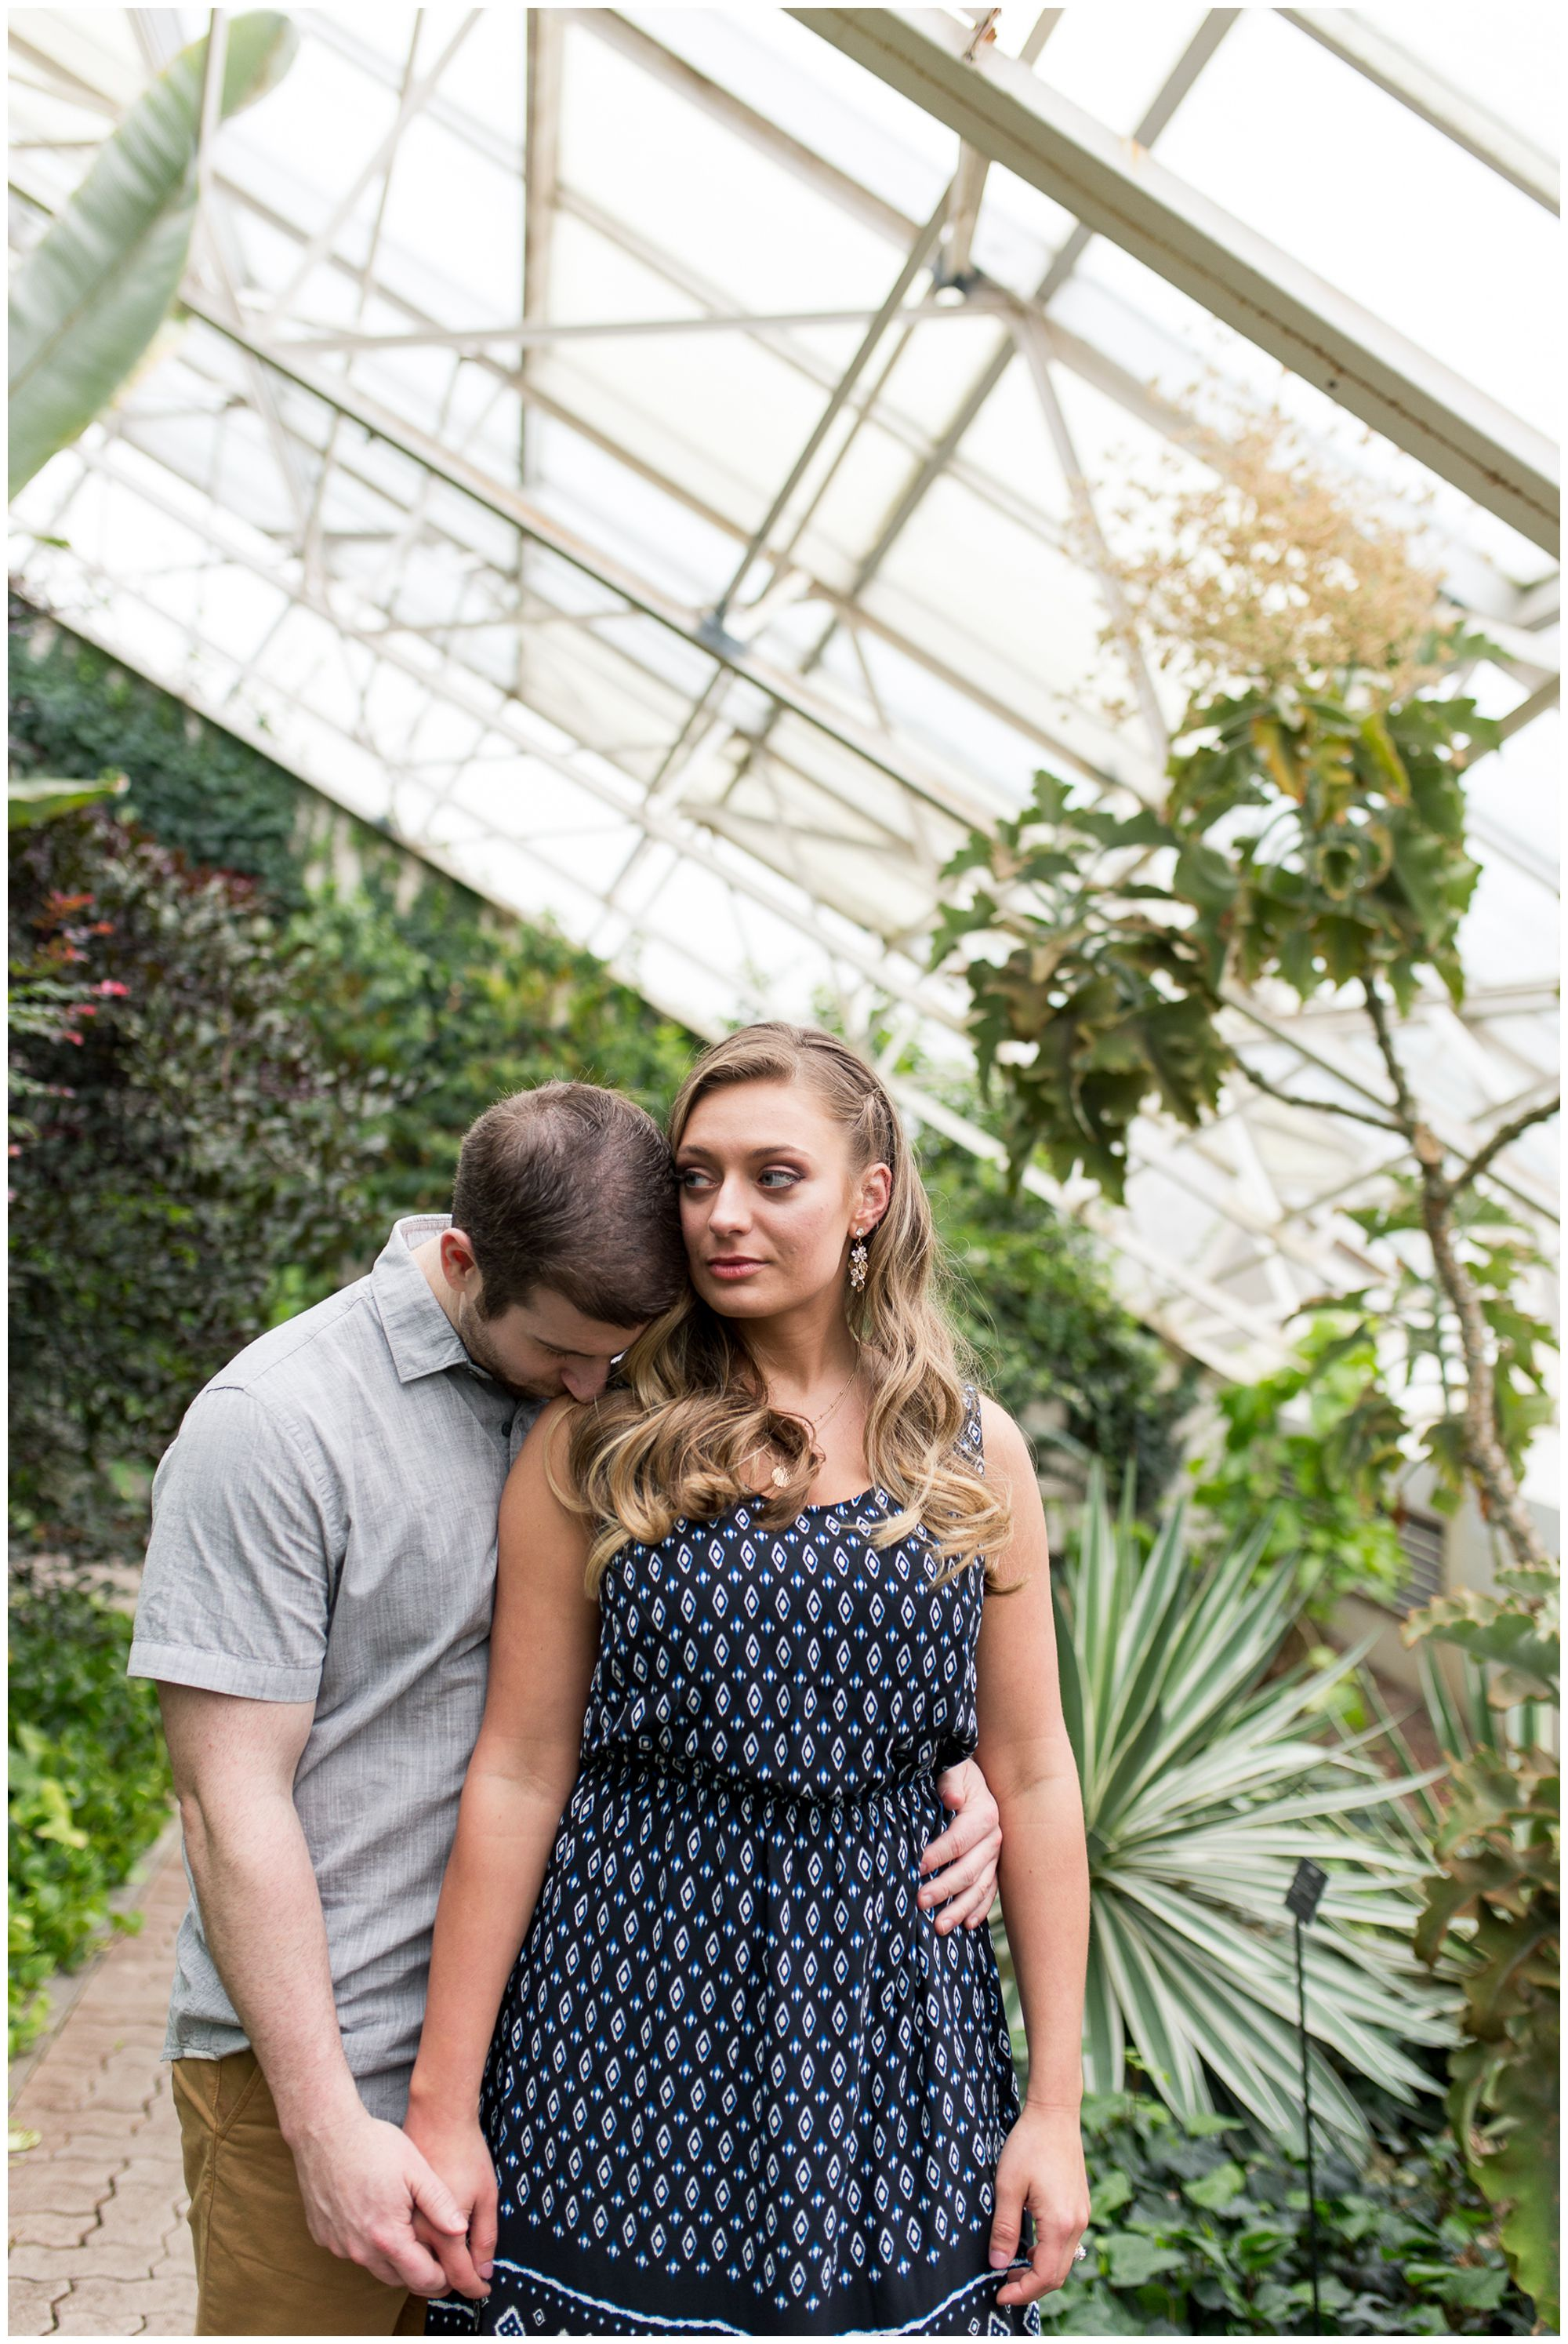 Fort Wayne indoor engagement session at Foellinger-Freimann Botanical Conservatory